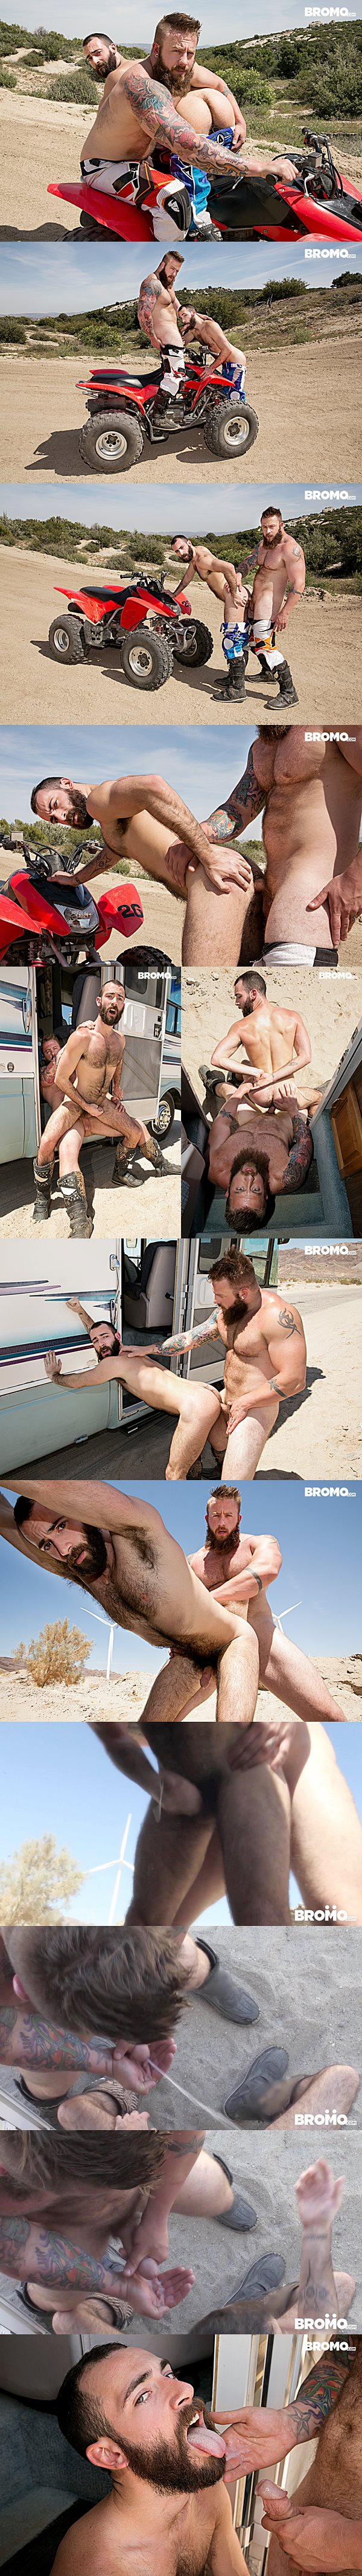 Hot hairy hunk Aaron Bruiser barebacks Stephen Harte in Dirty Rider Part #1 at Bromo 02